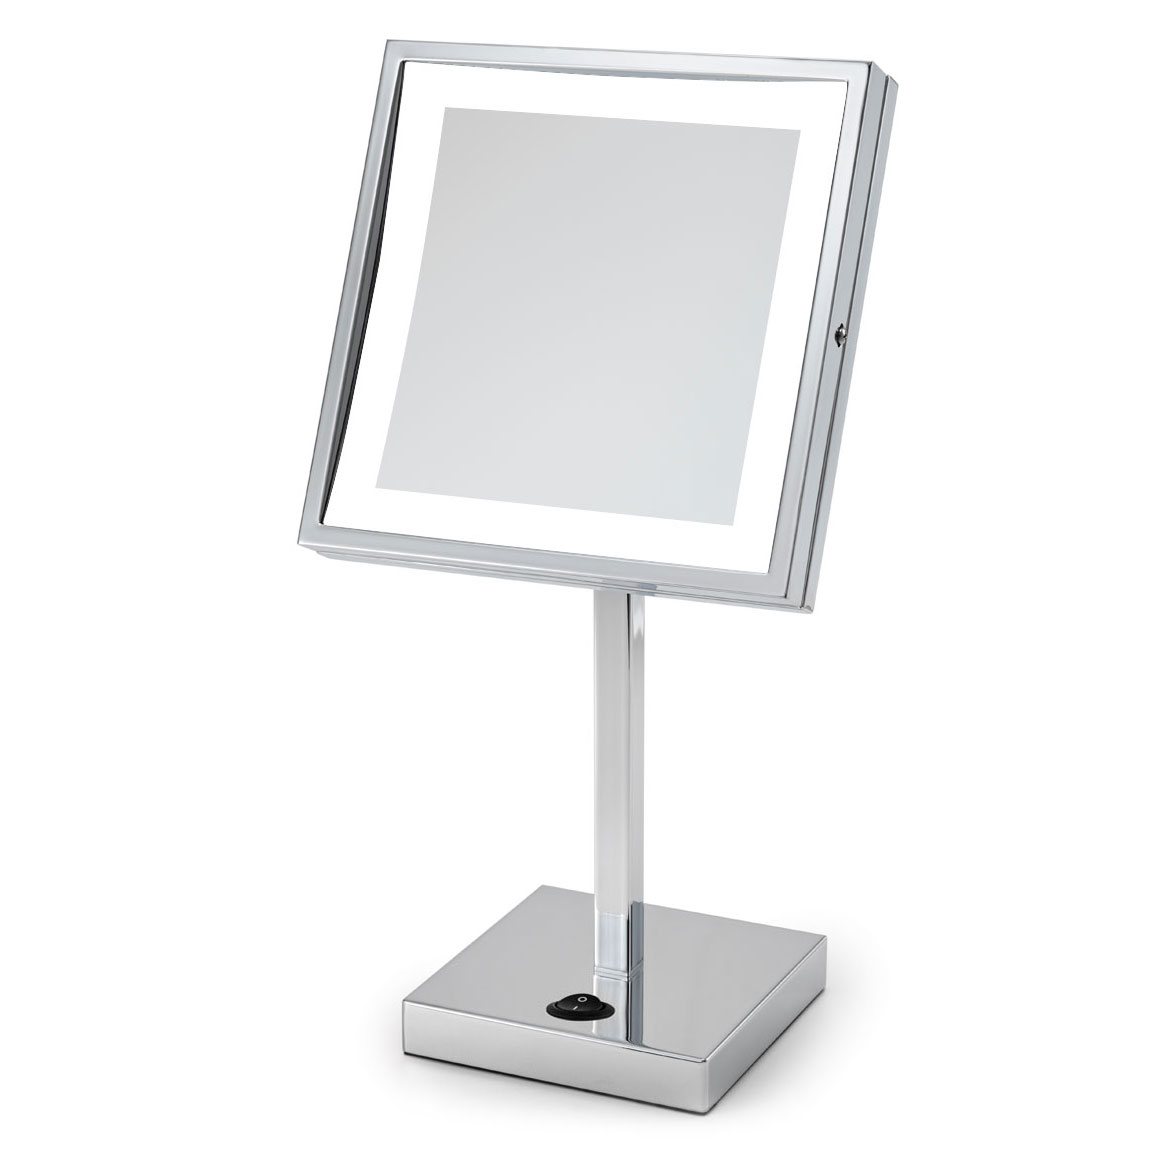 Wall Mounted Makeup Mirror With Lights wall-mounted makeup mirrorelectric mirror | emhl88sil-ch